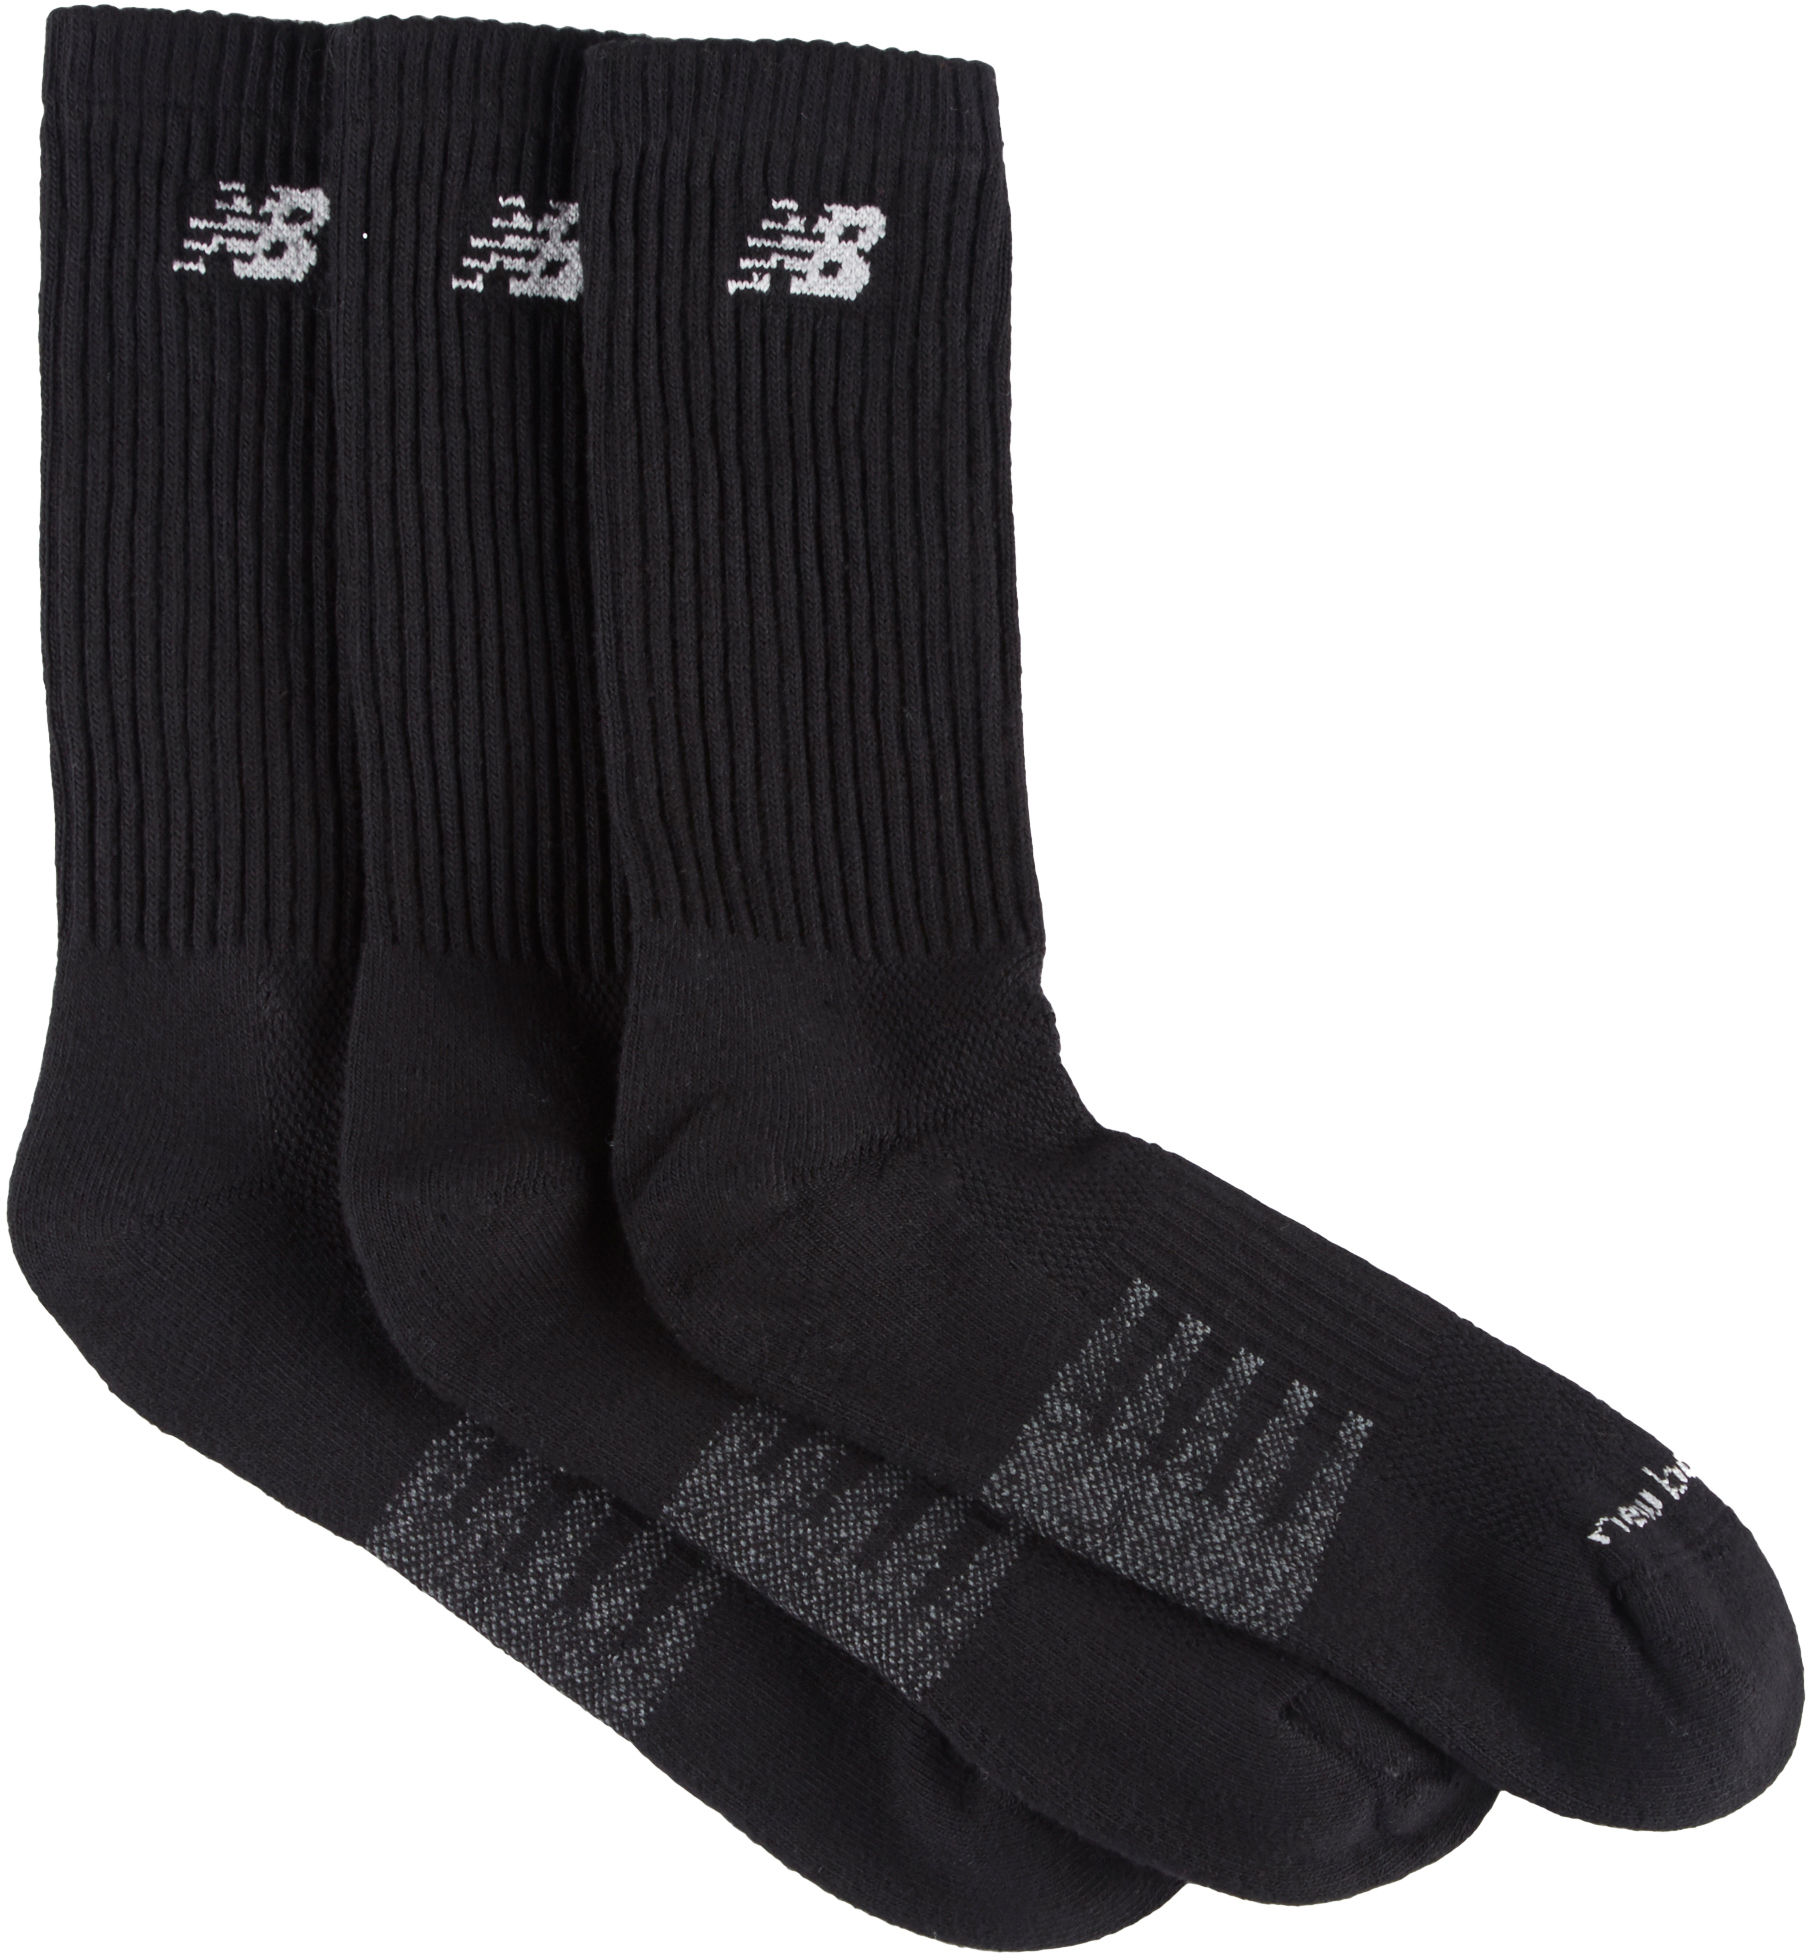 New Balance Mens 3-pk. Core Performance Crew Socks